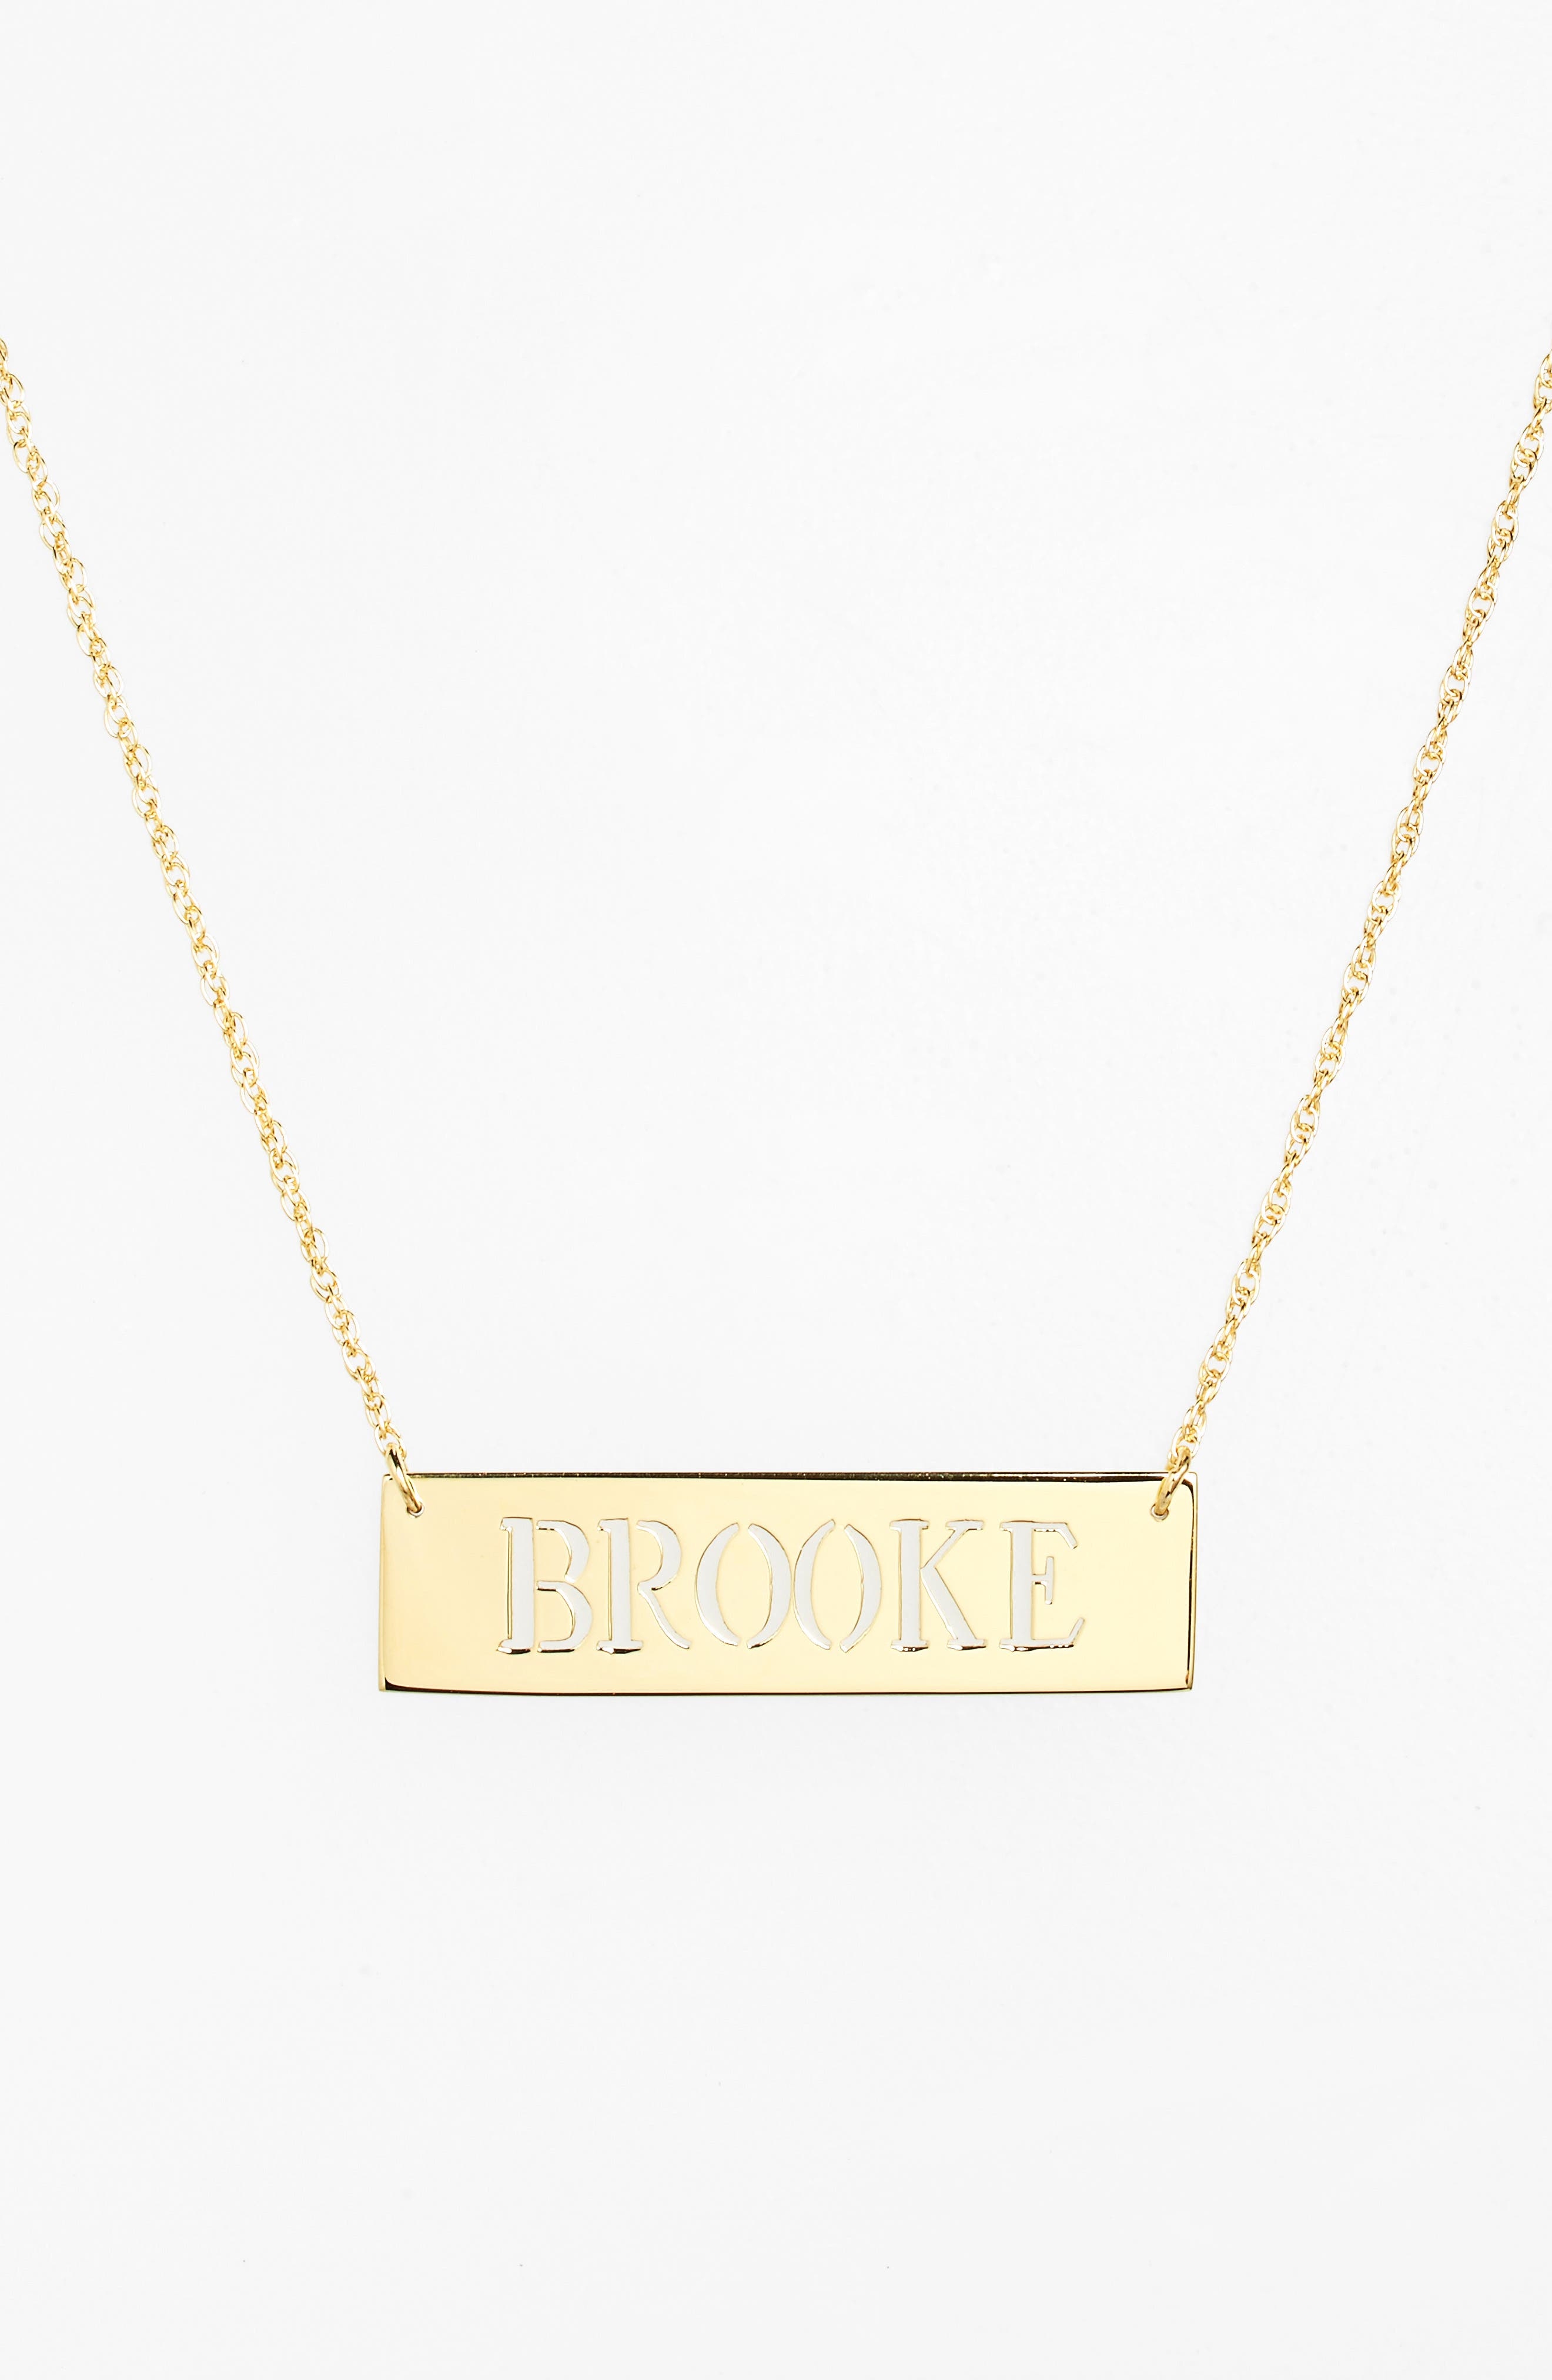 Personalized Cutout Nameplate Necklace,                             Alternate thumbnail 3, color,                             GOLD